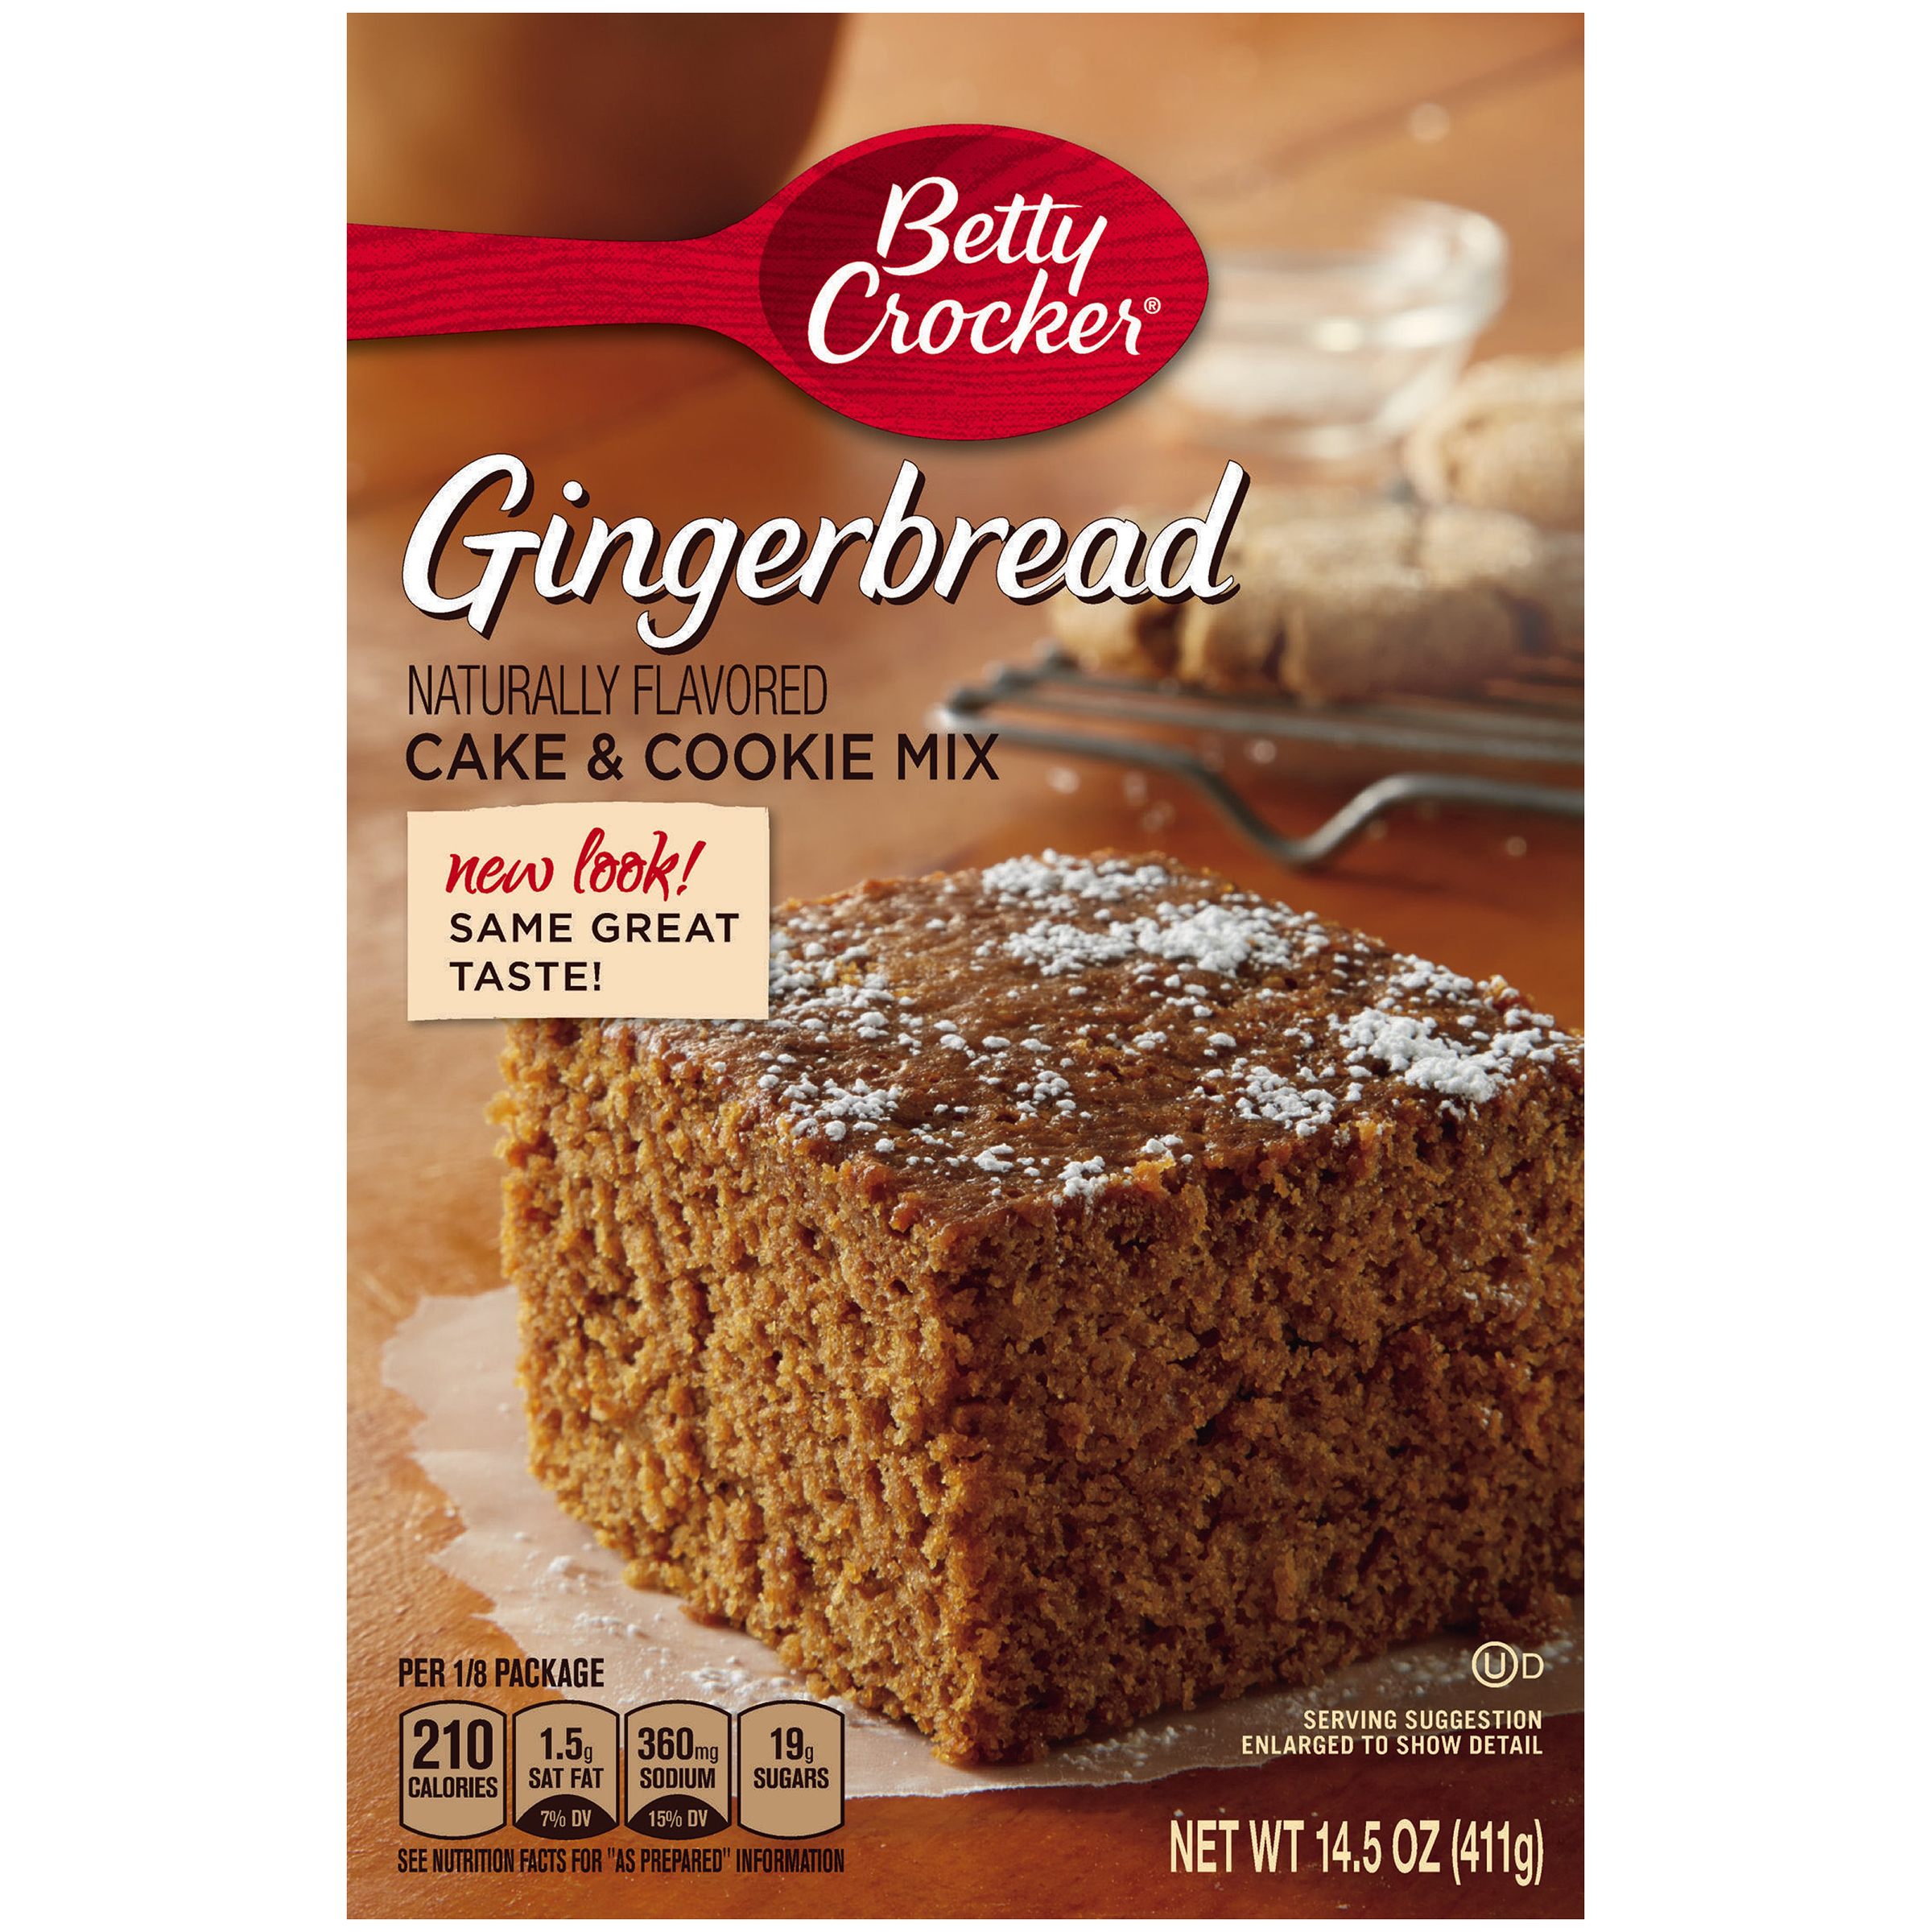 Betty Crocker Cake & Cookie Mix Gingerbread 14.5 oz Box